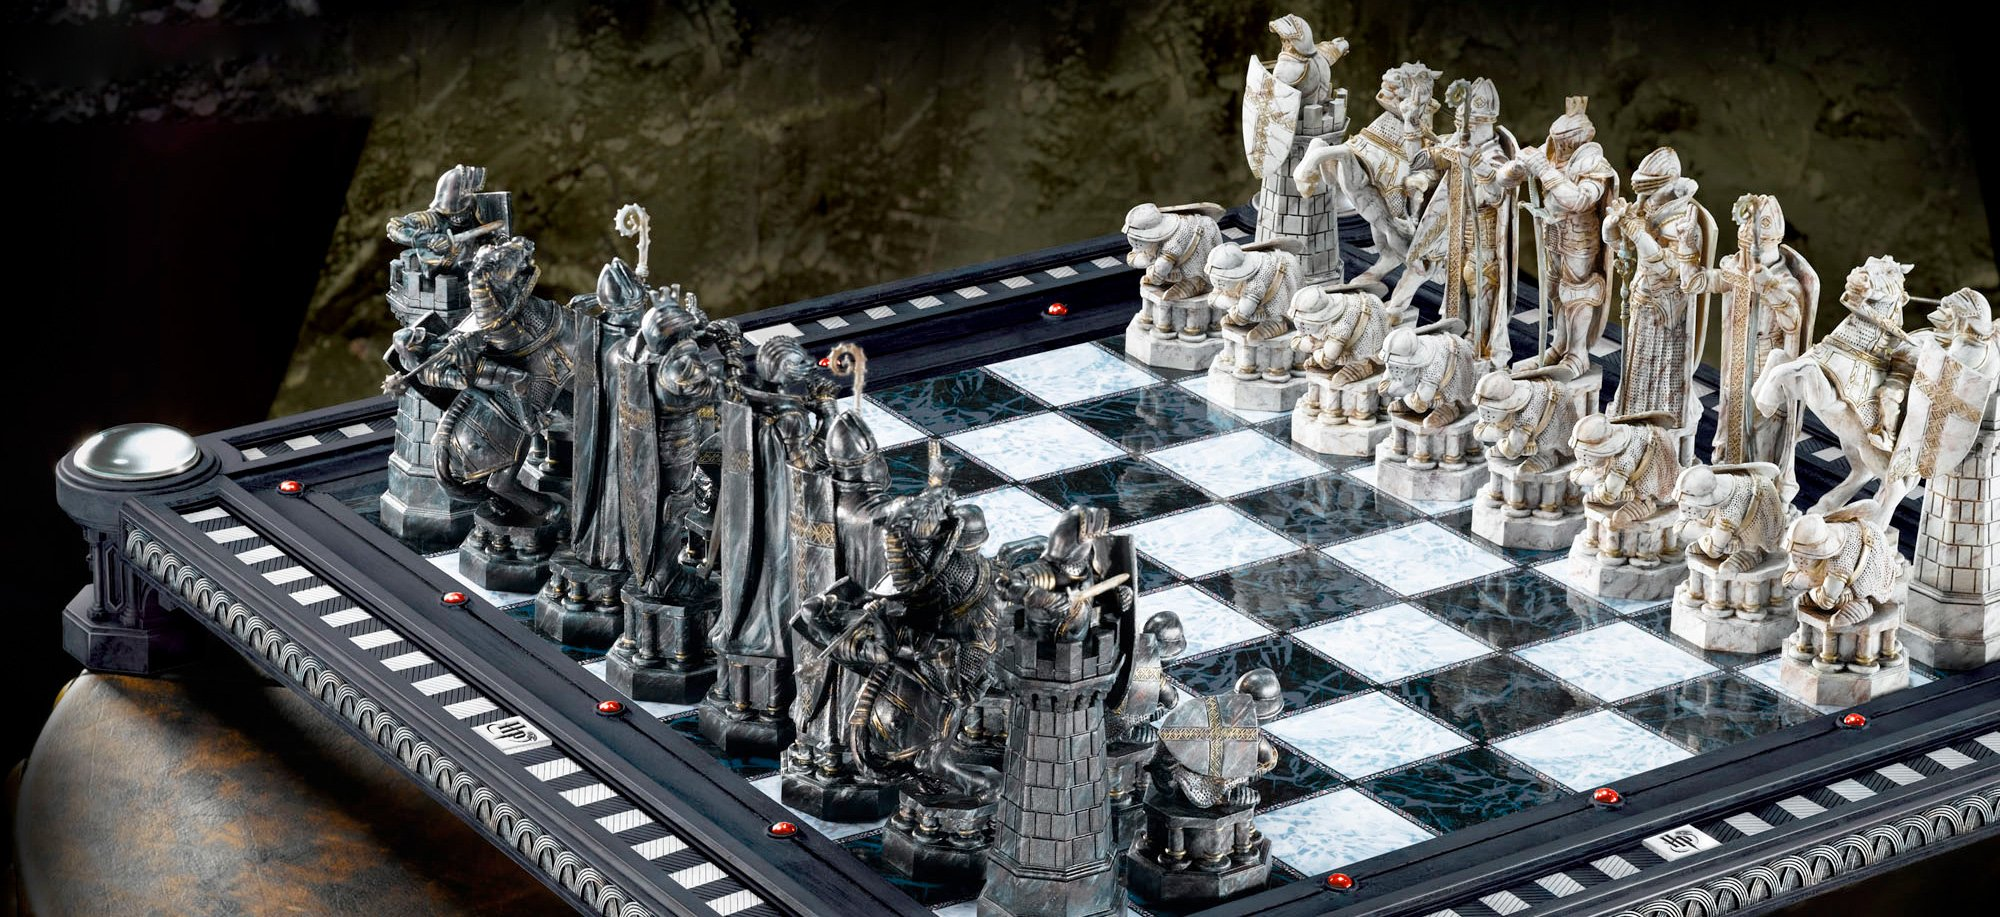 Cool Stuff: 'Harry Potter' Wizard Chess Replica Will Clear Out Your Gringotts Vault